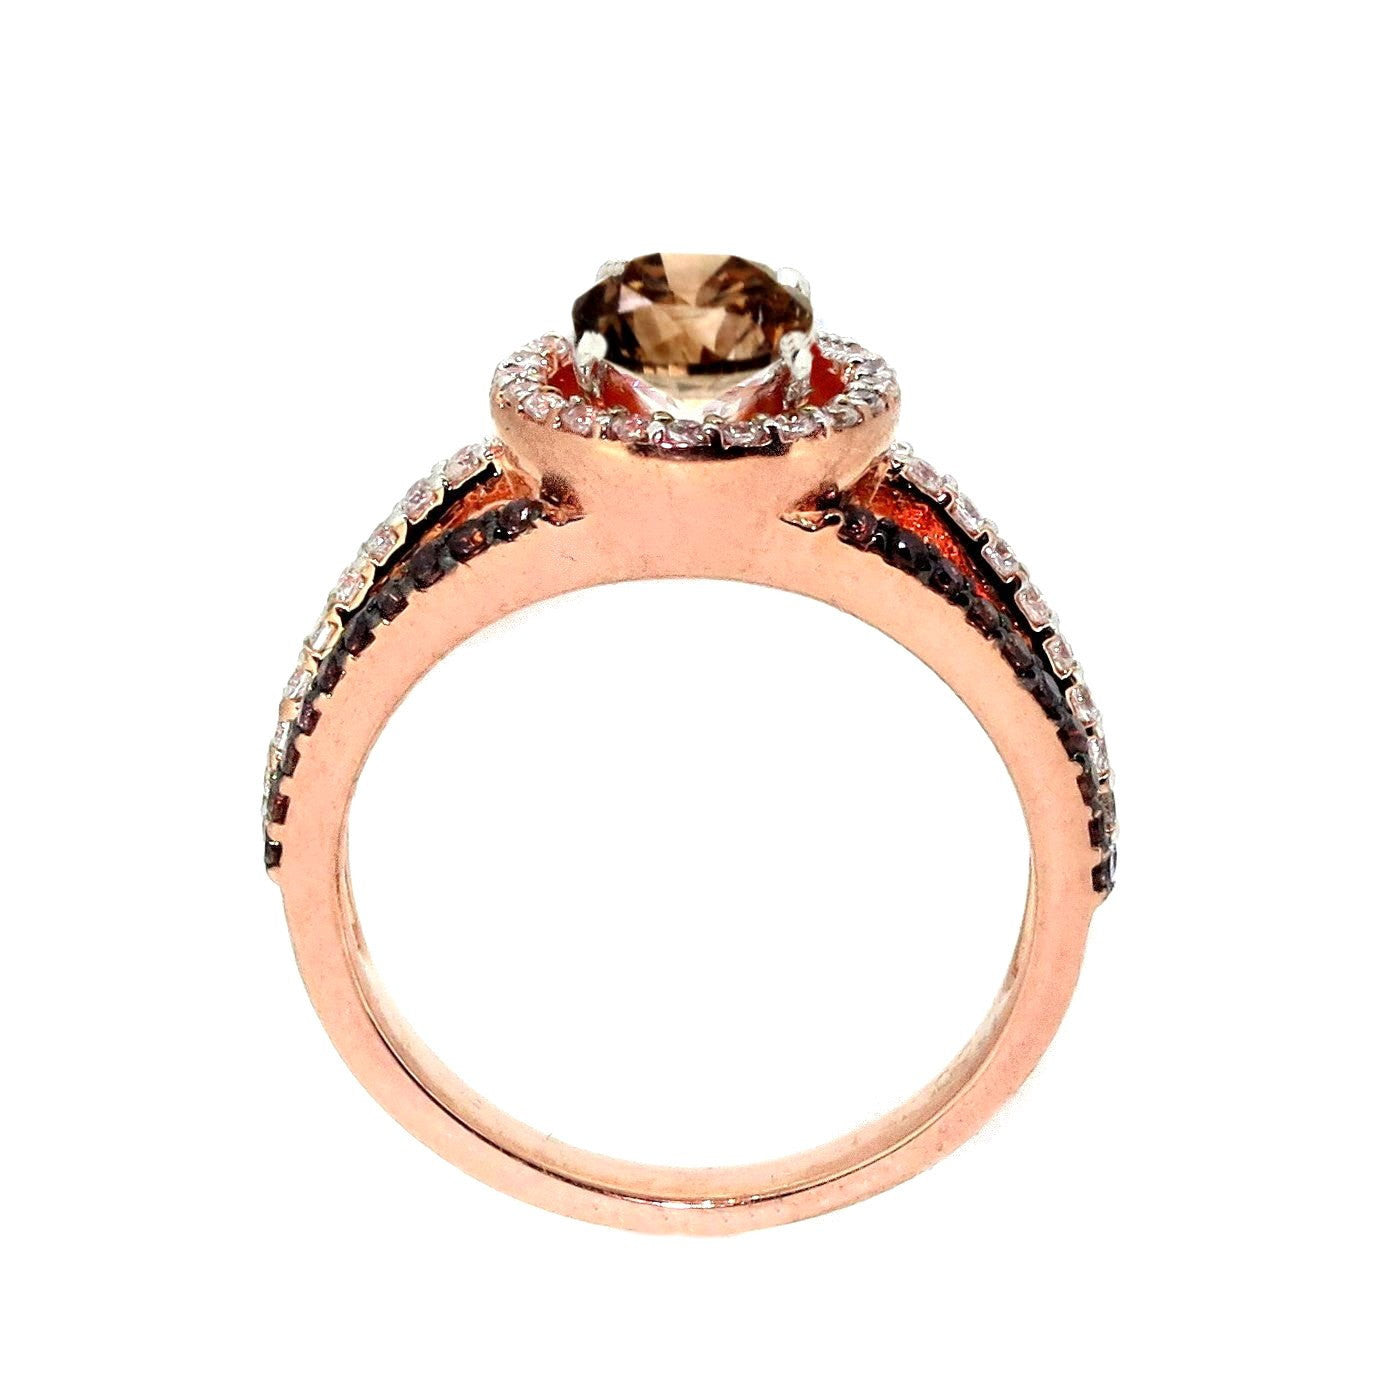 1 Carat Brown Diamond Floating Halo Engagement Ring , Rose Gold, Unique White & Brown Diamonds Accent Stones, Anniversary Ring - BD94646